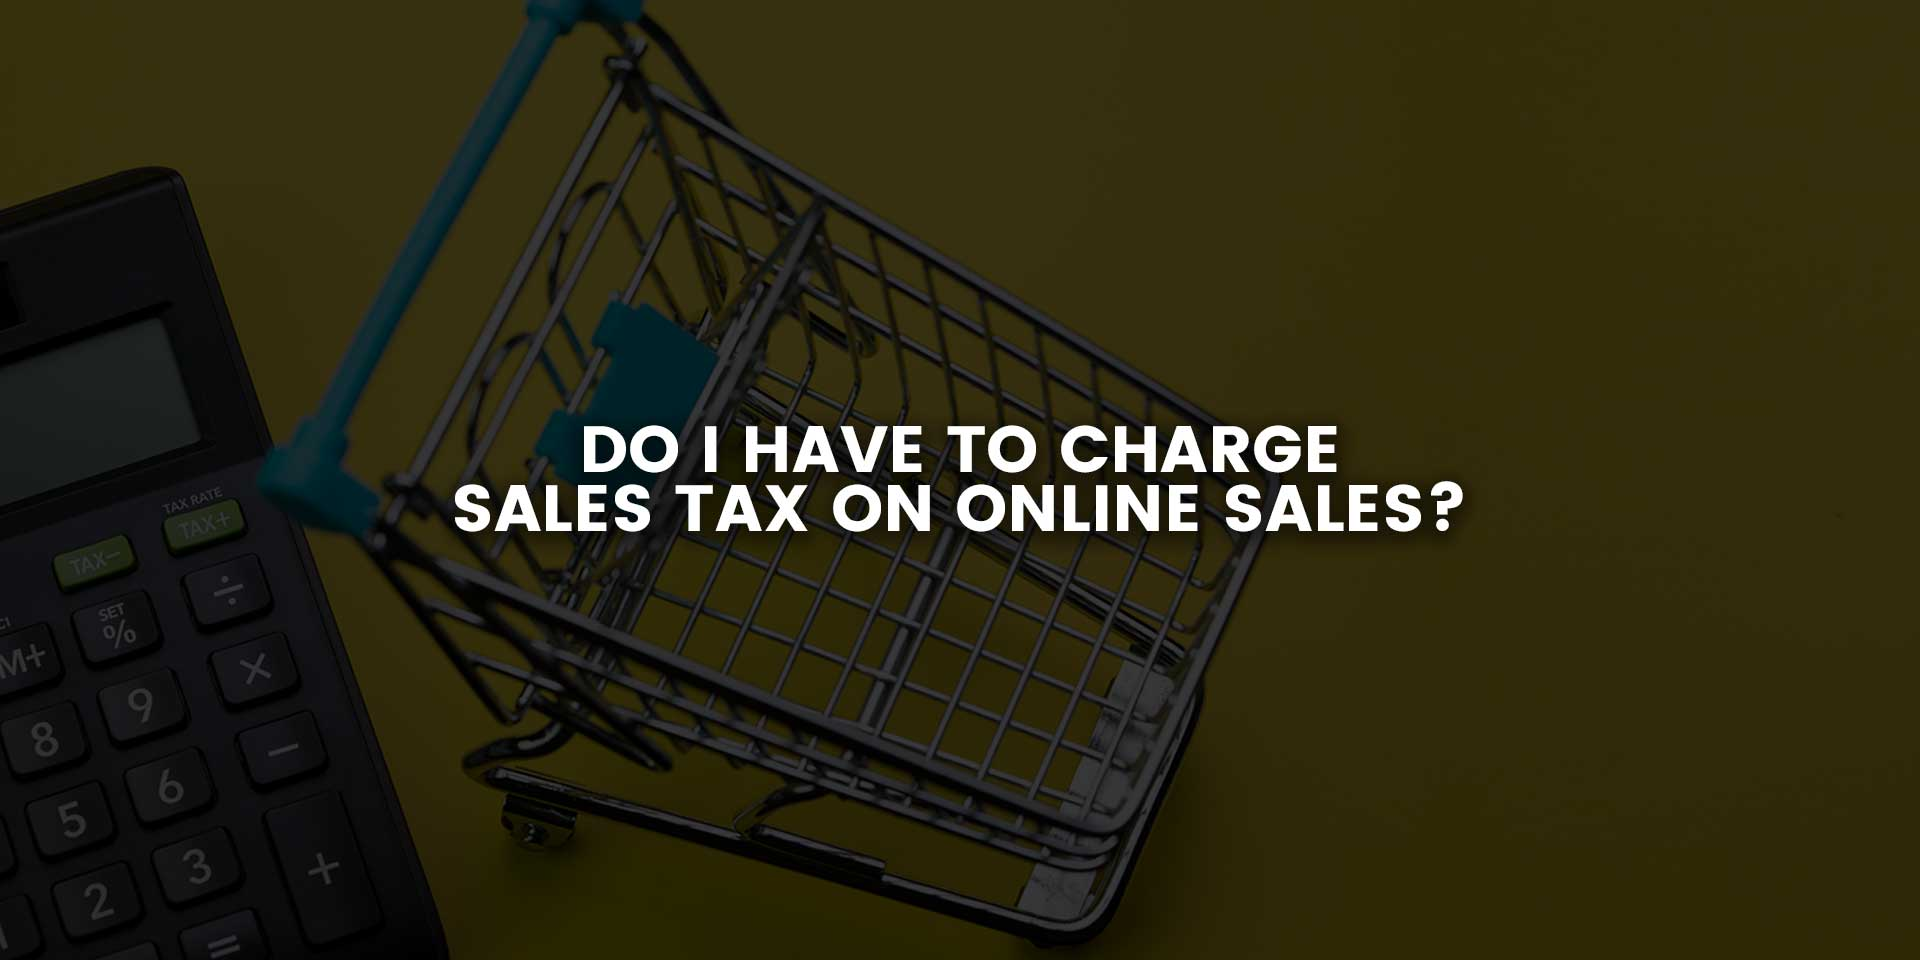 Do I have to Charge Sales Tax on Online Sales?